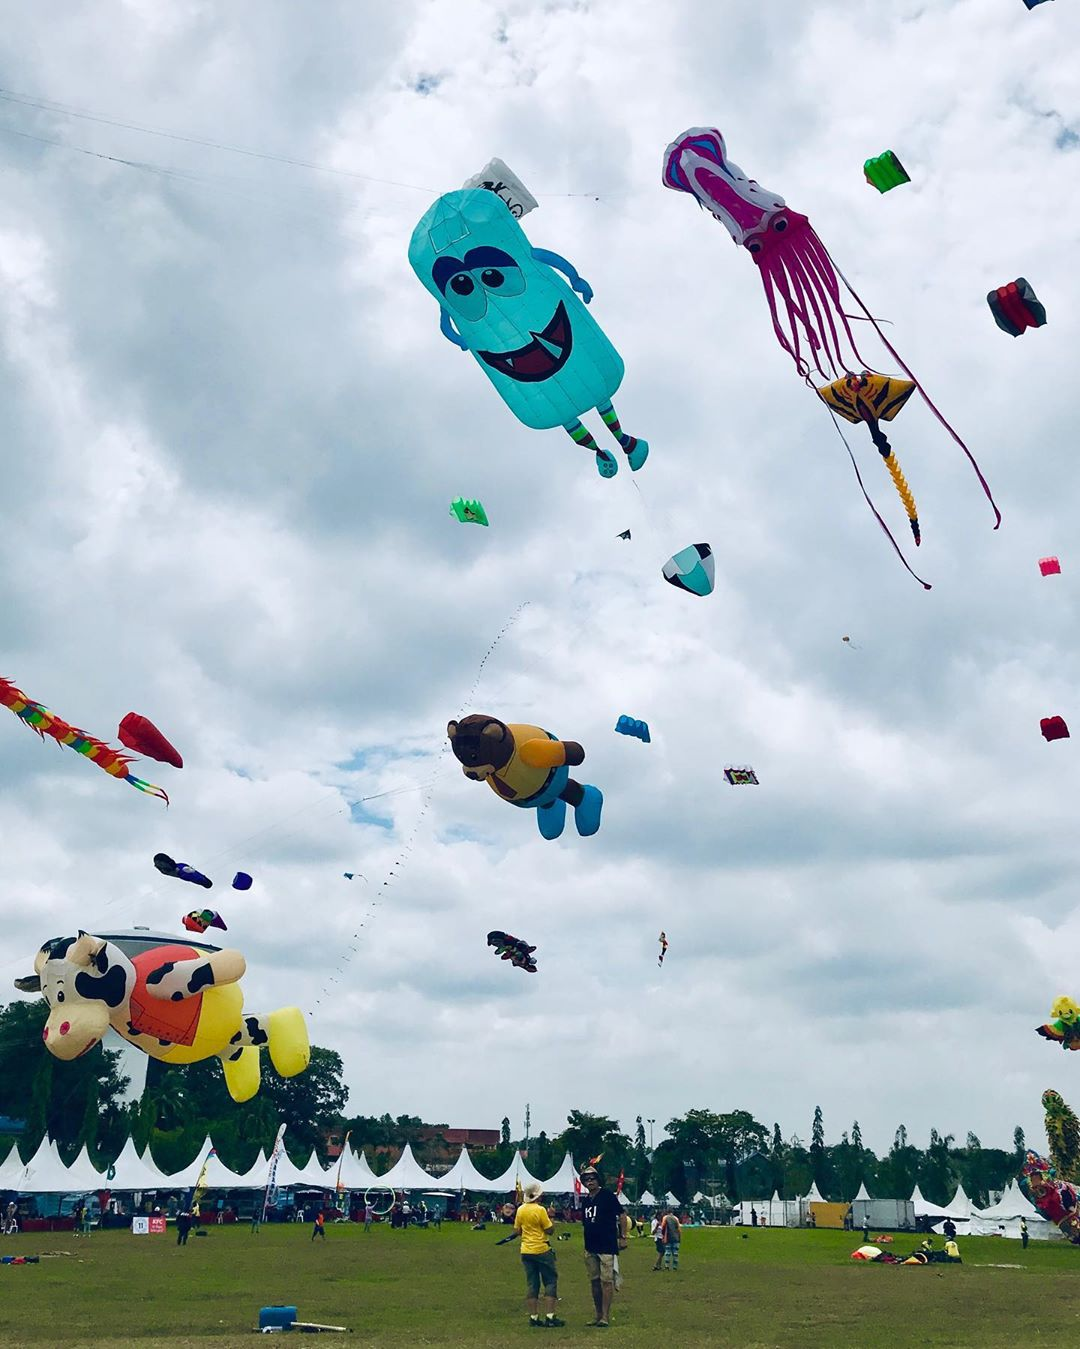 Pasir Gudang World Kite Festival 2020